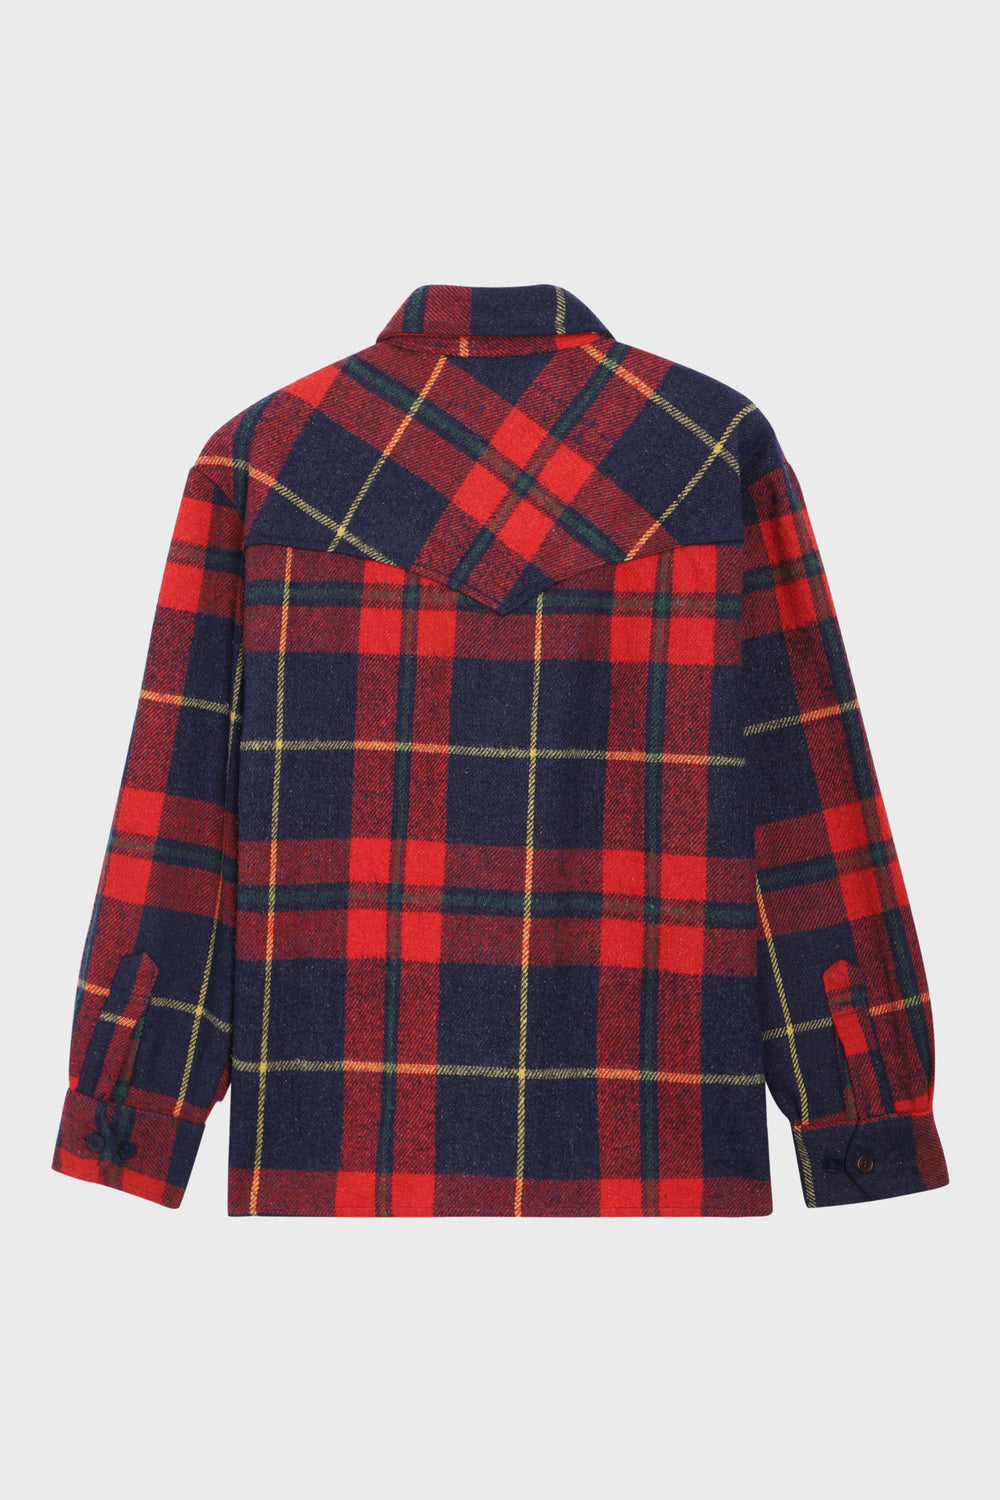 product-color-Red and Navy Checked Overshirt